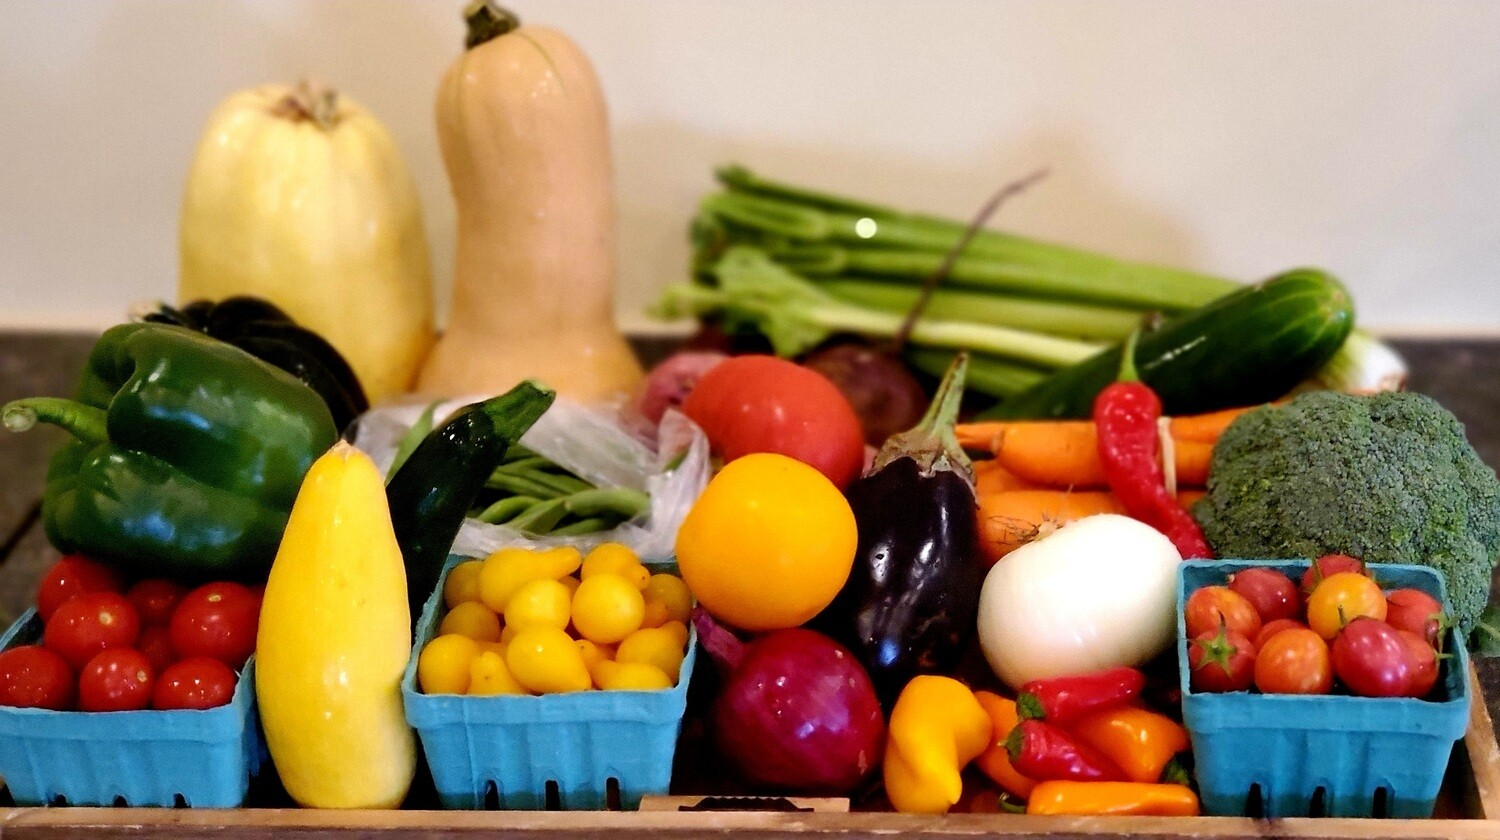 FALL PRODUCE BAGS - 4 SEMI-WEEKLY DELIVERIES (Select Size - Price Varies by Bag Size ($65-$125)